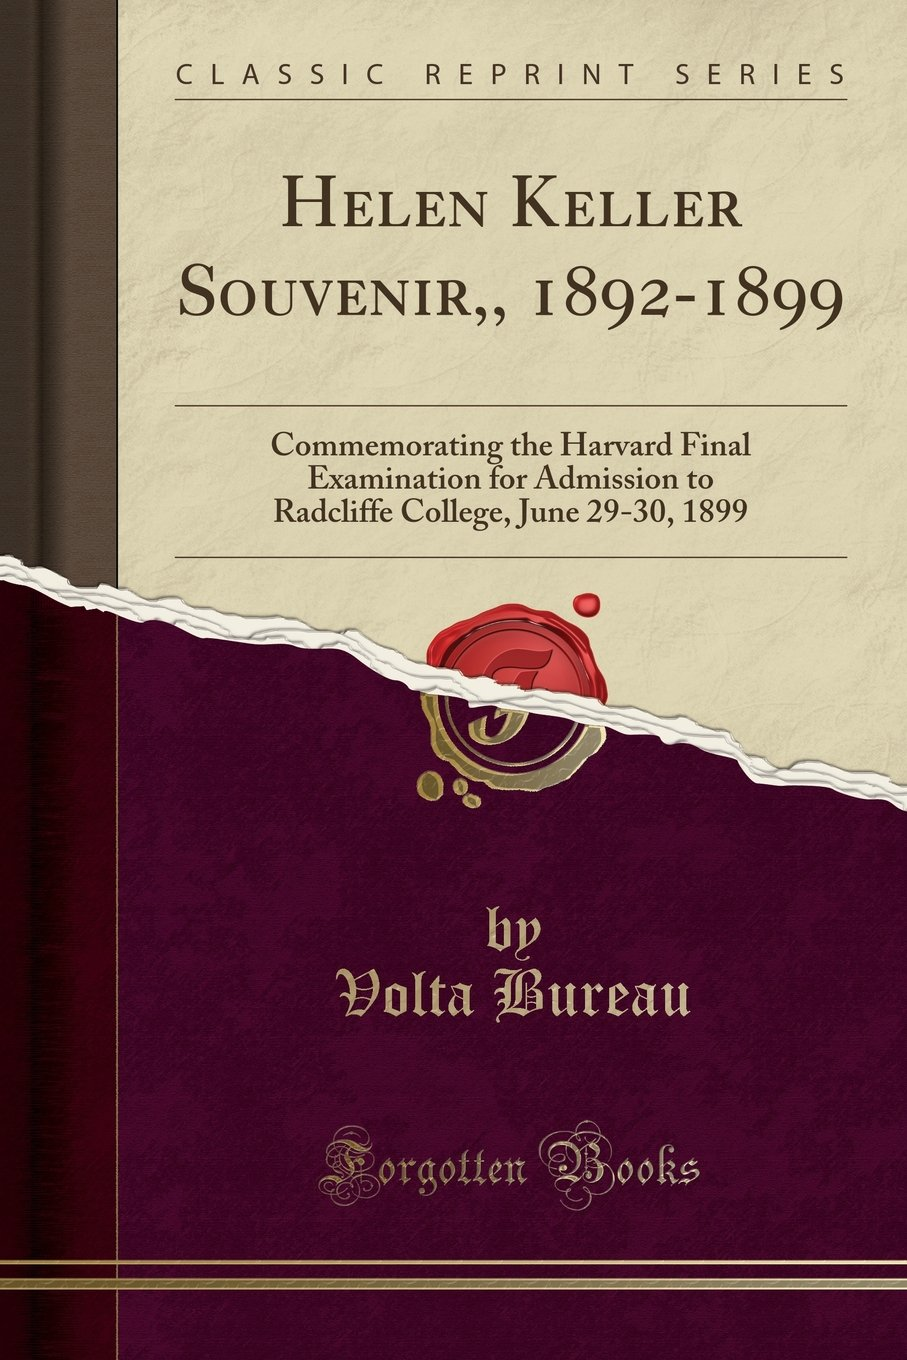 Download Helen Keller Souvenir,, 1892-1899: Commemorating the Harvard Final Examination for Admission to Radcliffe College, June 29-30, 1899 (Classic Reprint) ebook